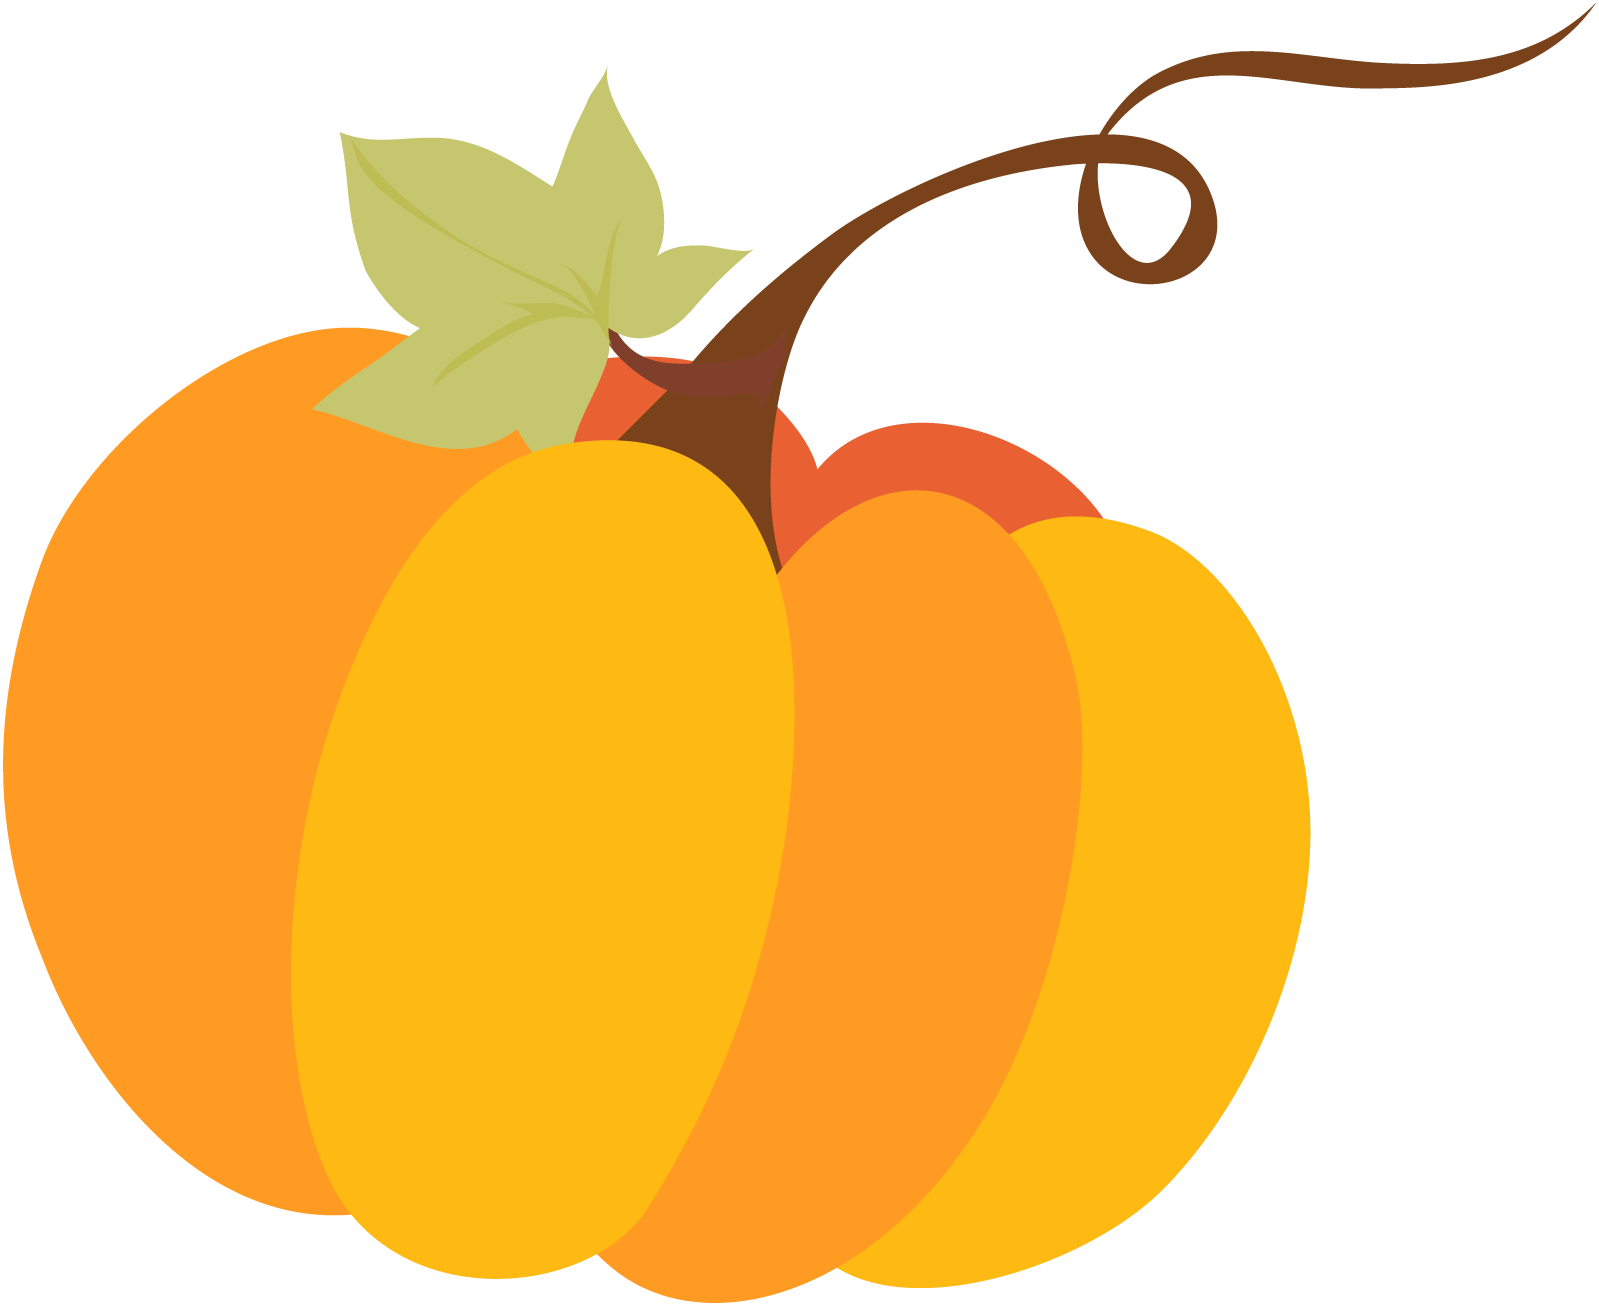 png royalty free stock transparent pumpkin clipart #66884453